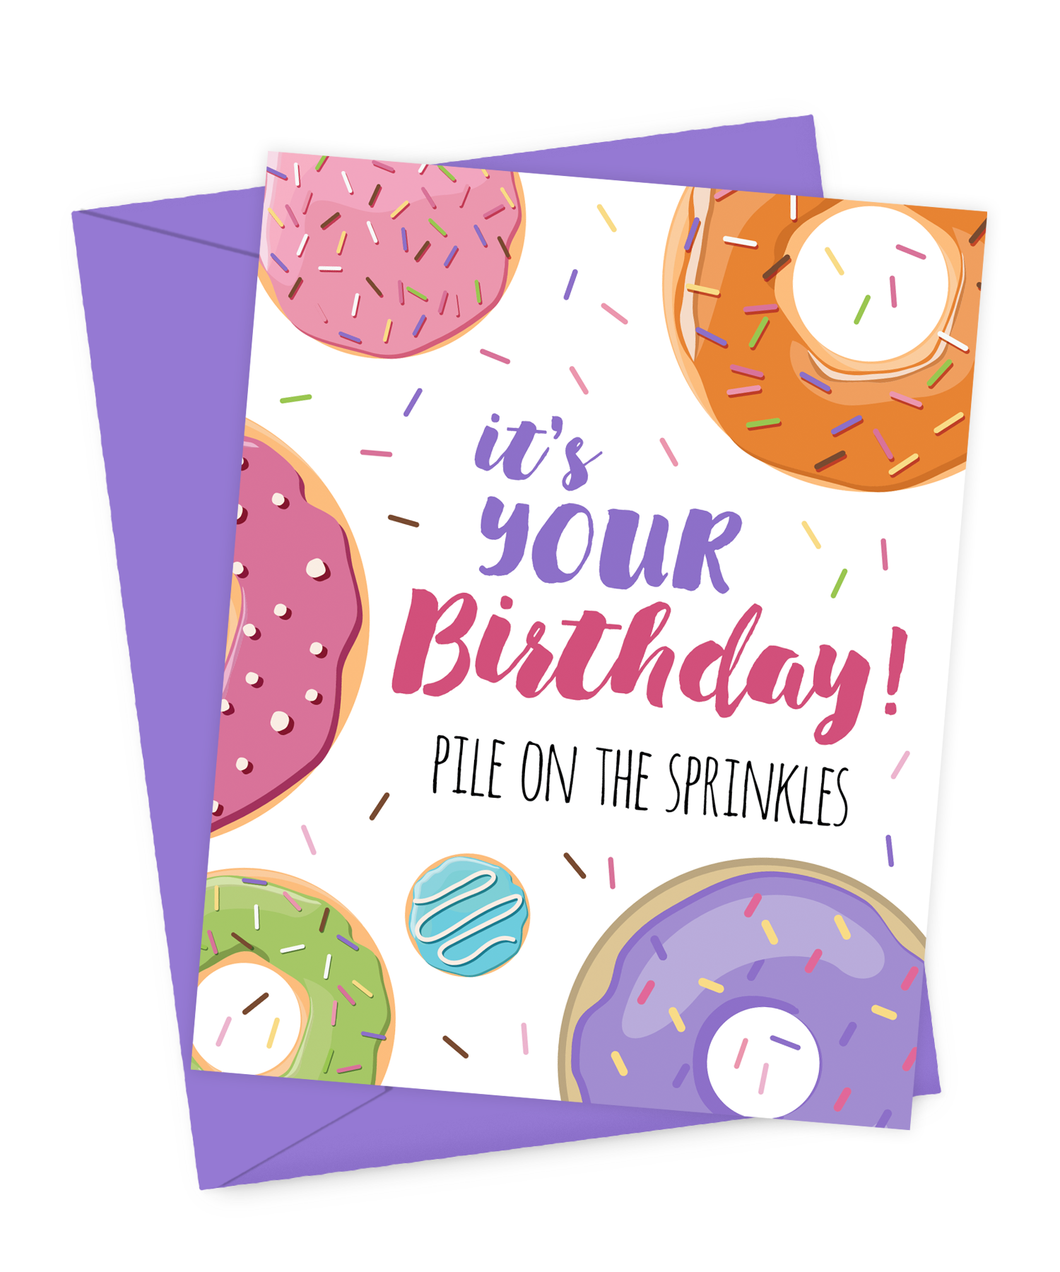 It's your birthday! Pile on the sprinkles.